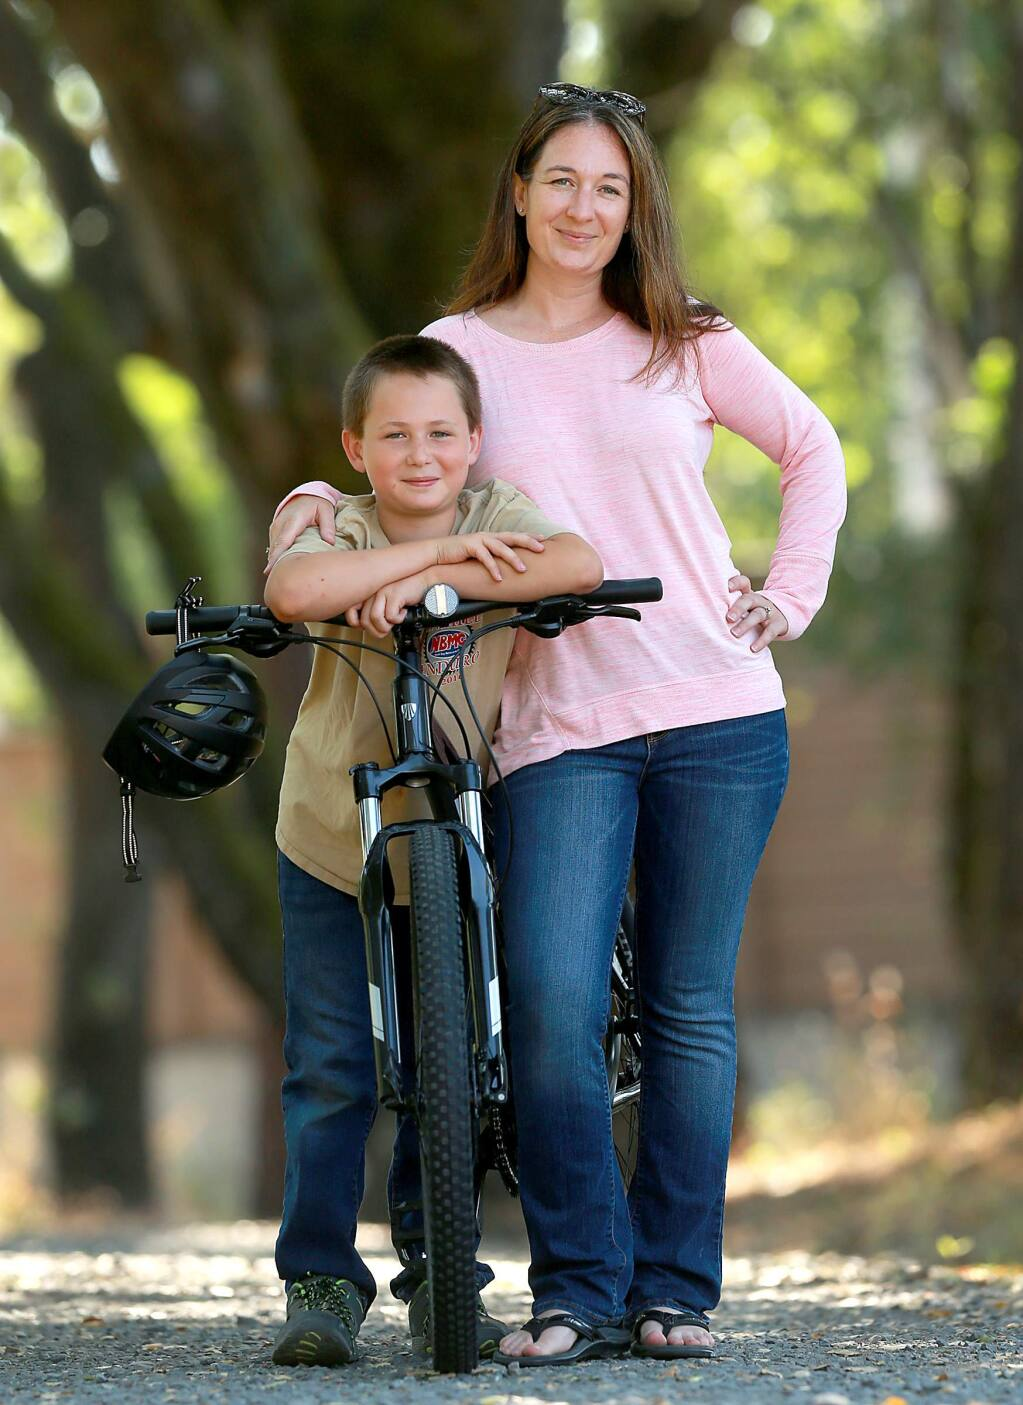 Will Seder, 9, saved his money and split the cost of a new bike with his mother, Tiffany. Two months later the bike stolen out of the garage of their west Santa Rosa home. (JOHN BURGESS/ PD)